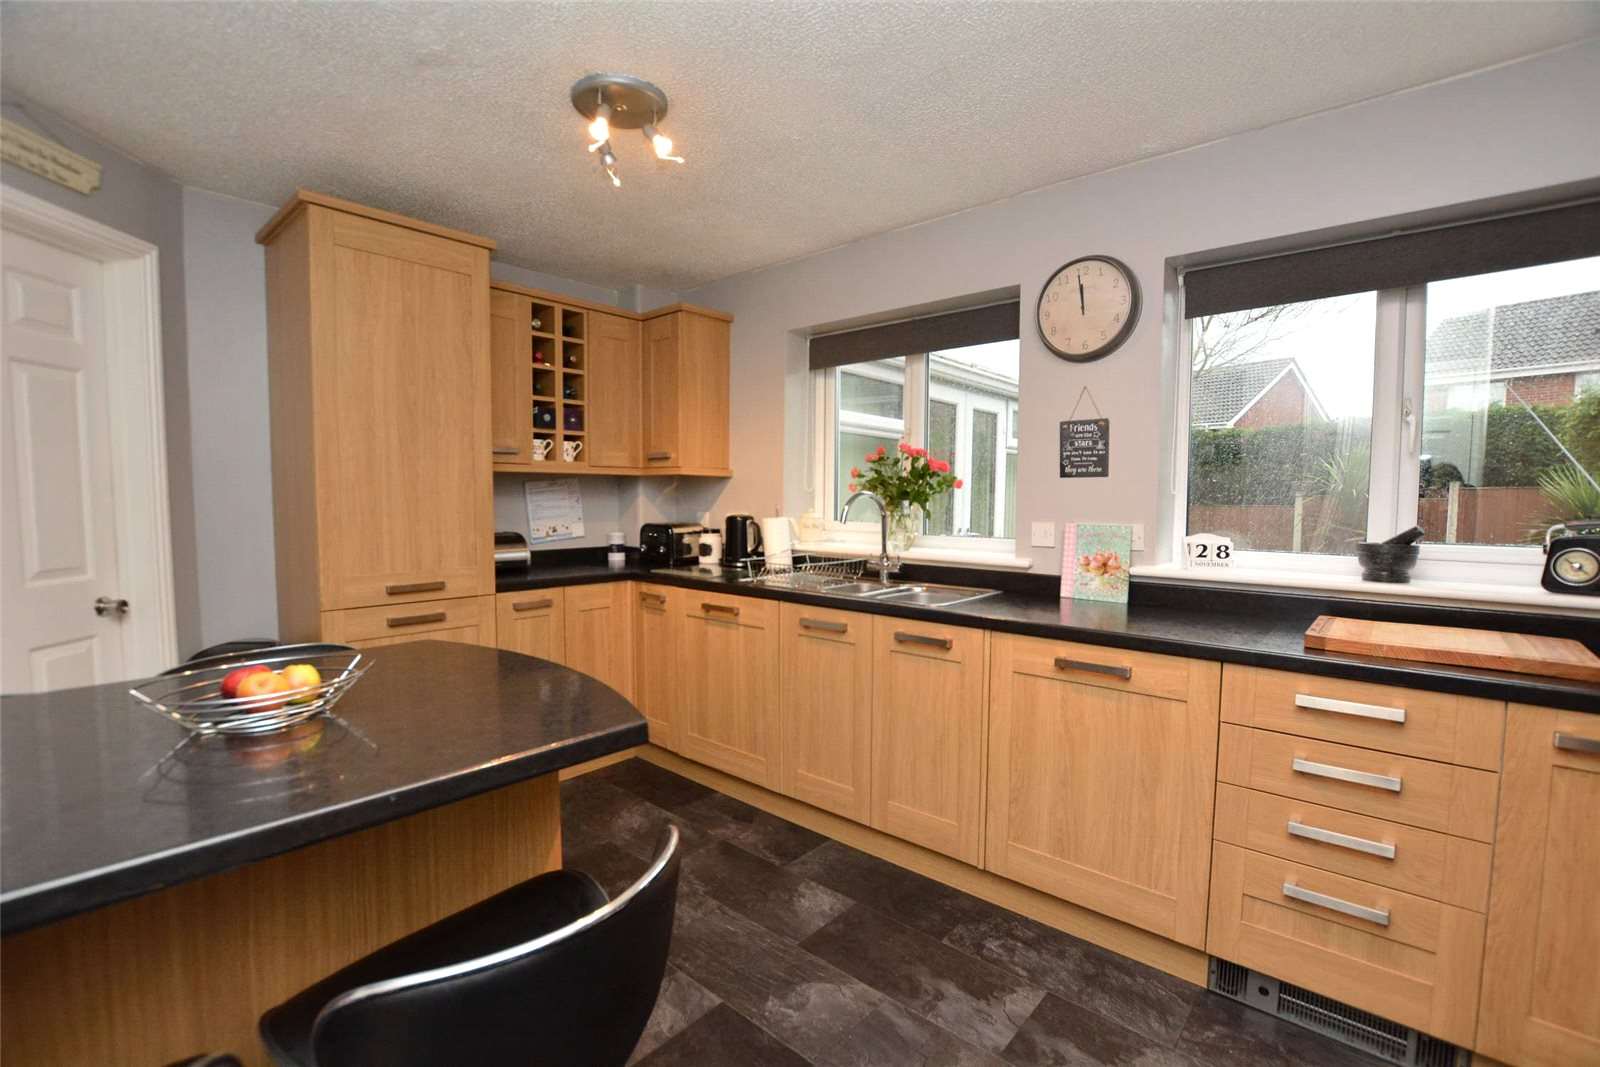 property for sale in Rothwell, interior modern fitted kitchen